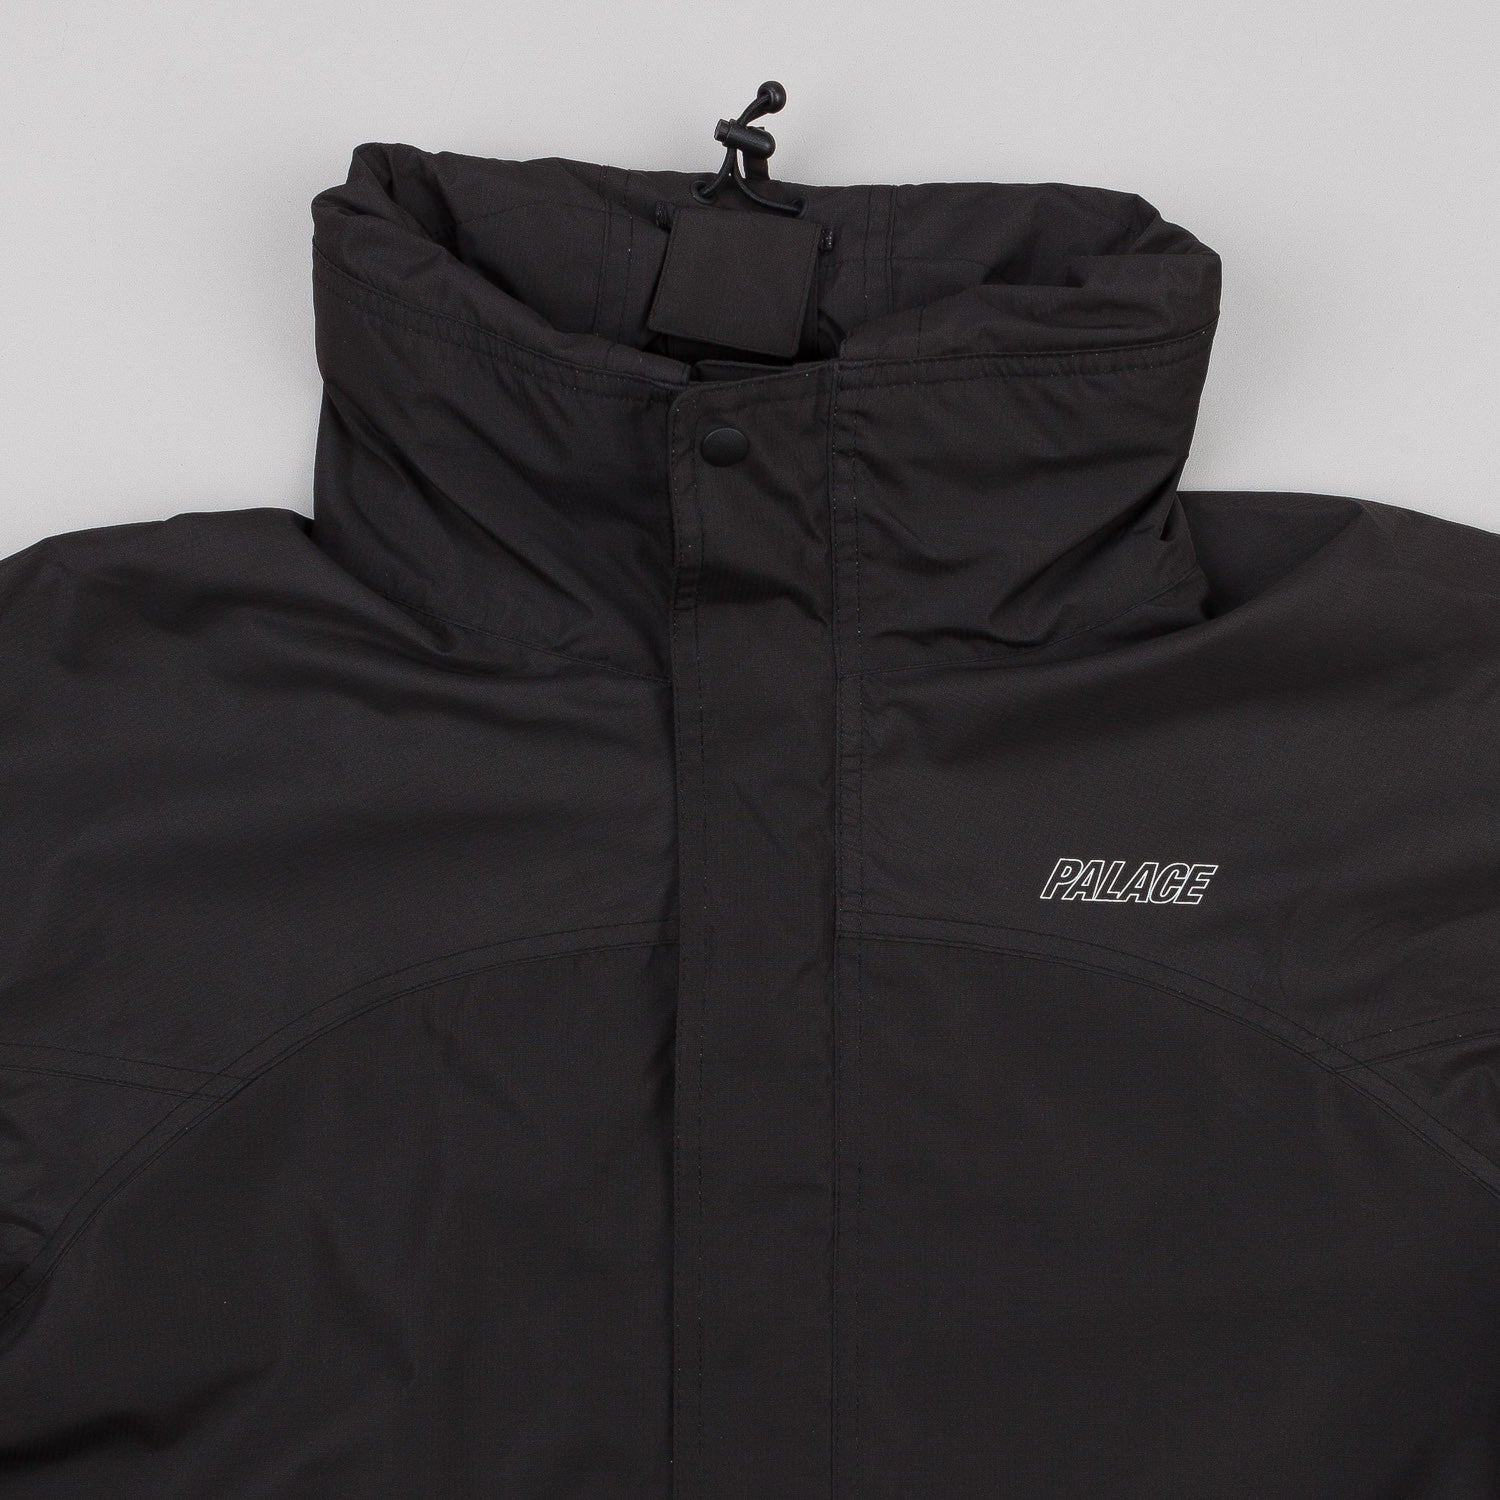 Palace Vent Jacket - Black